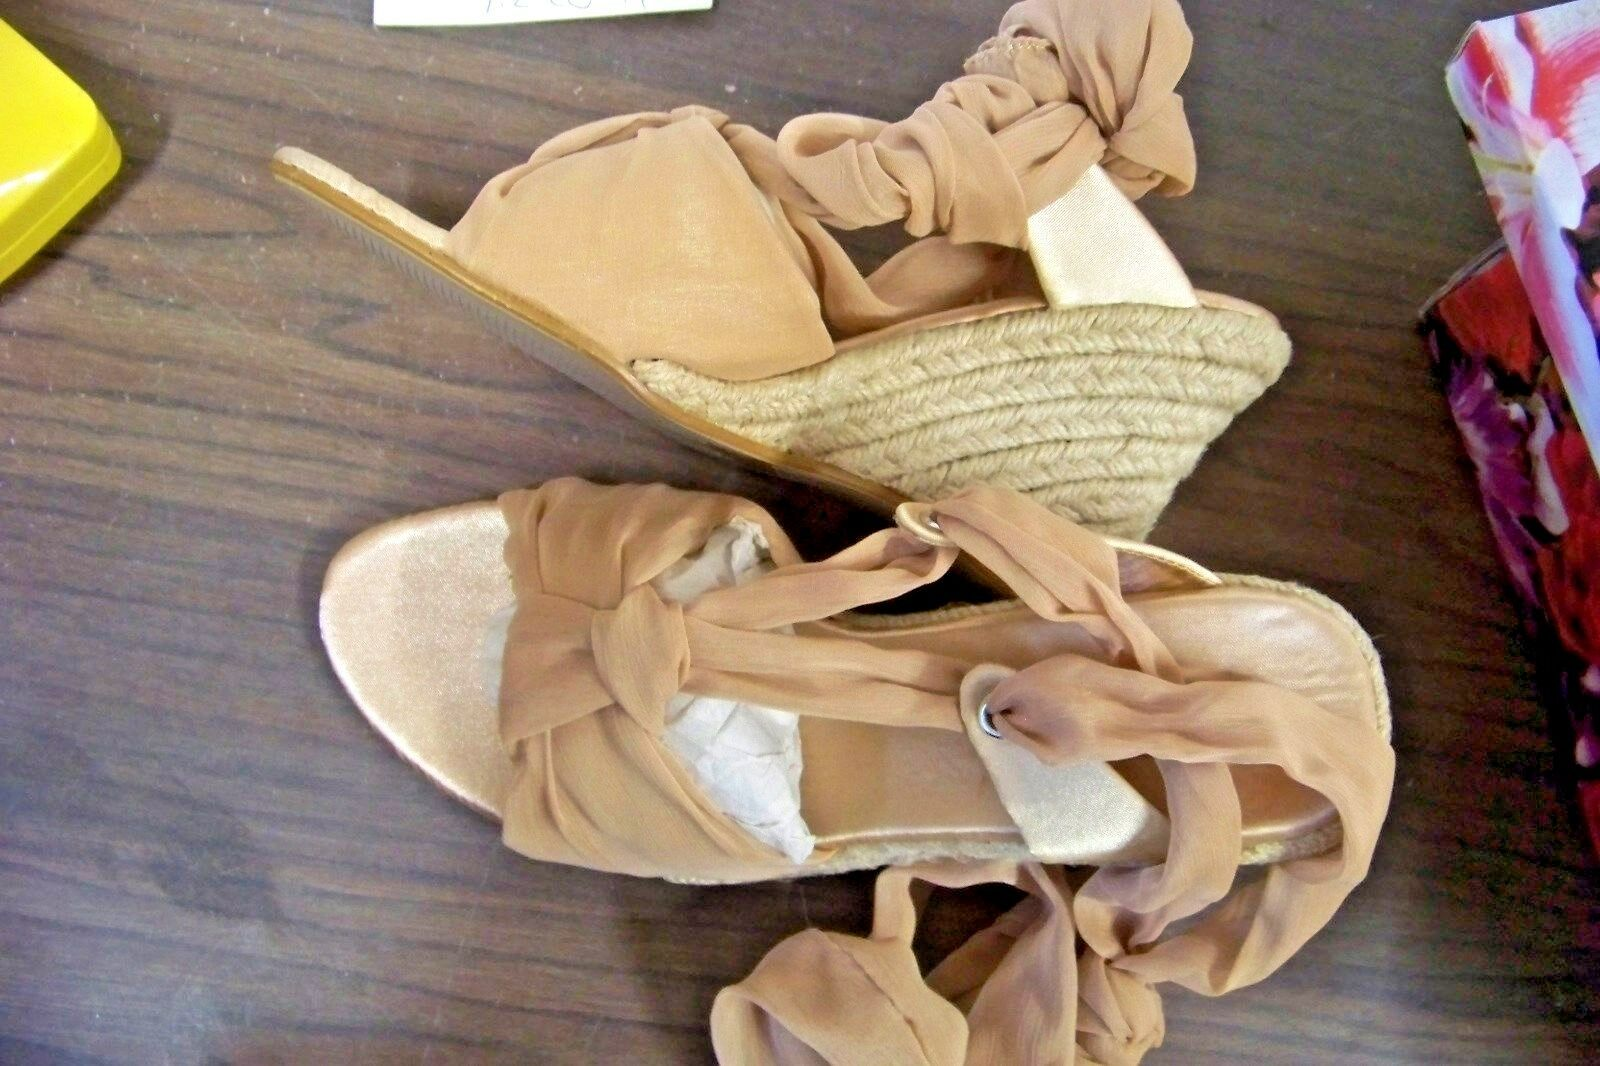 bolaro summer rio camel shoes ankle tie wedge heels shoes camel size 7 96c59e